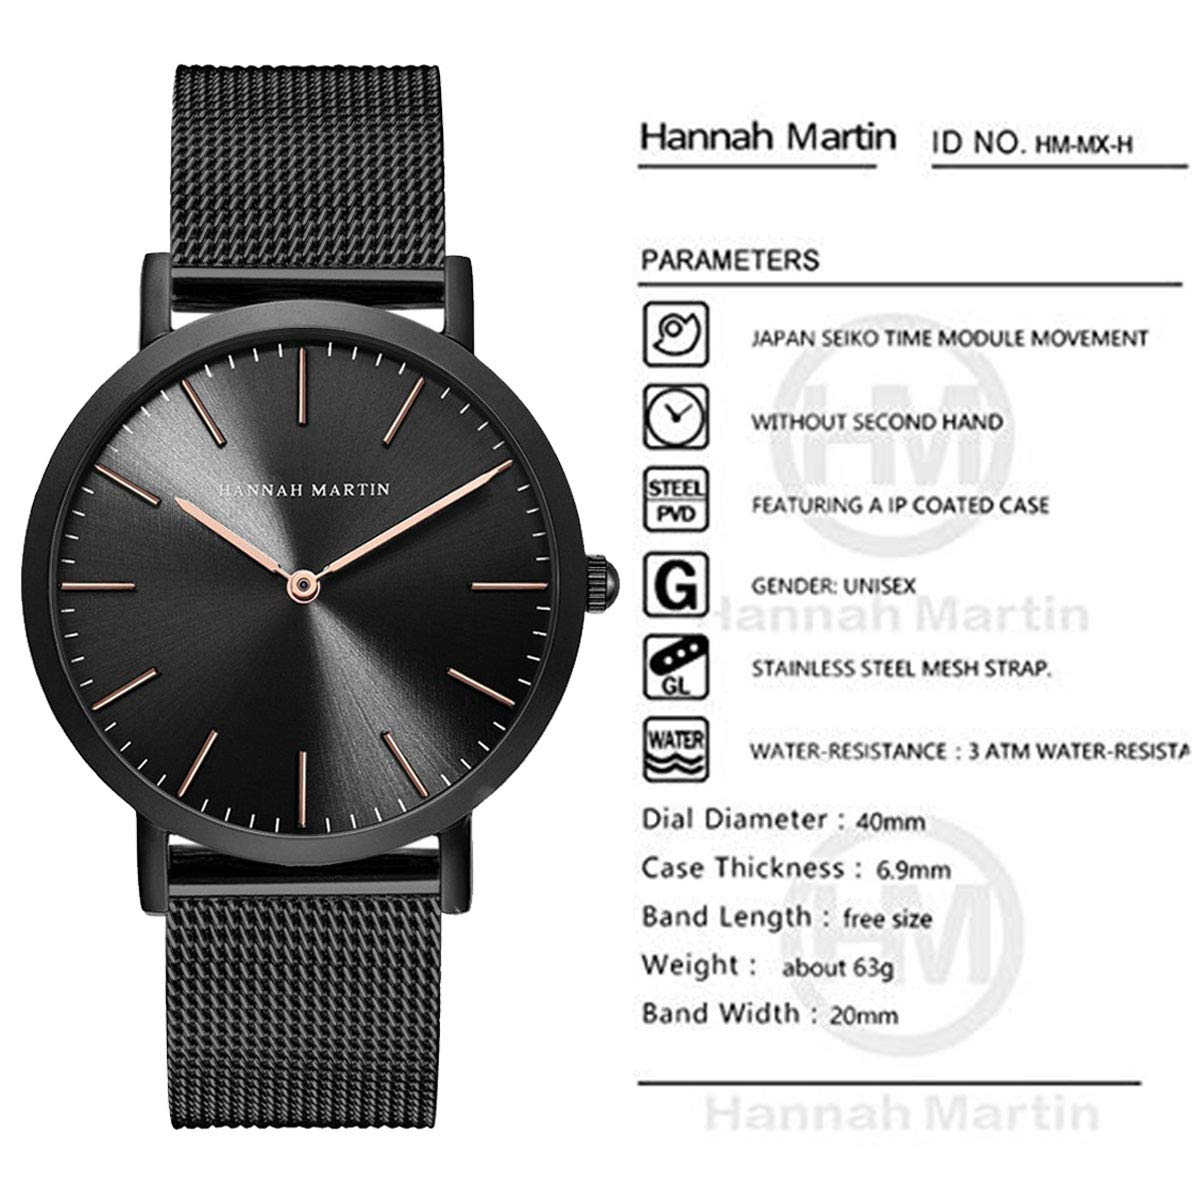 Amazon.com: Hannah Martin Unisex Japan Quartz Wrist Watches for Loves Gifts (Black&Rose Gold): Watches